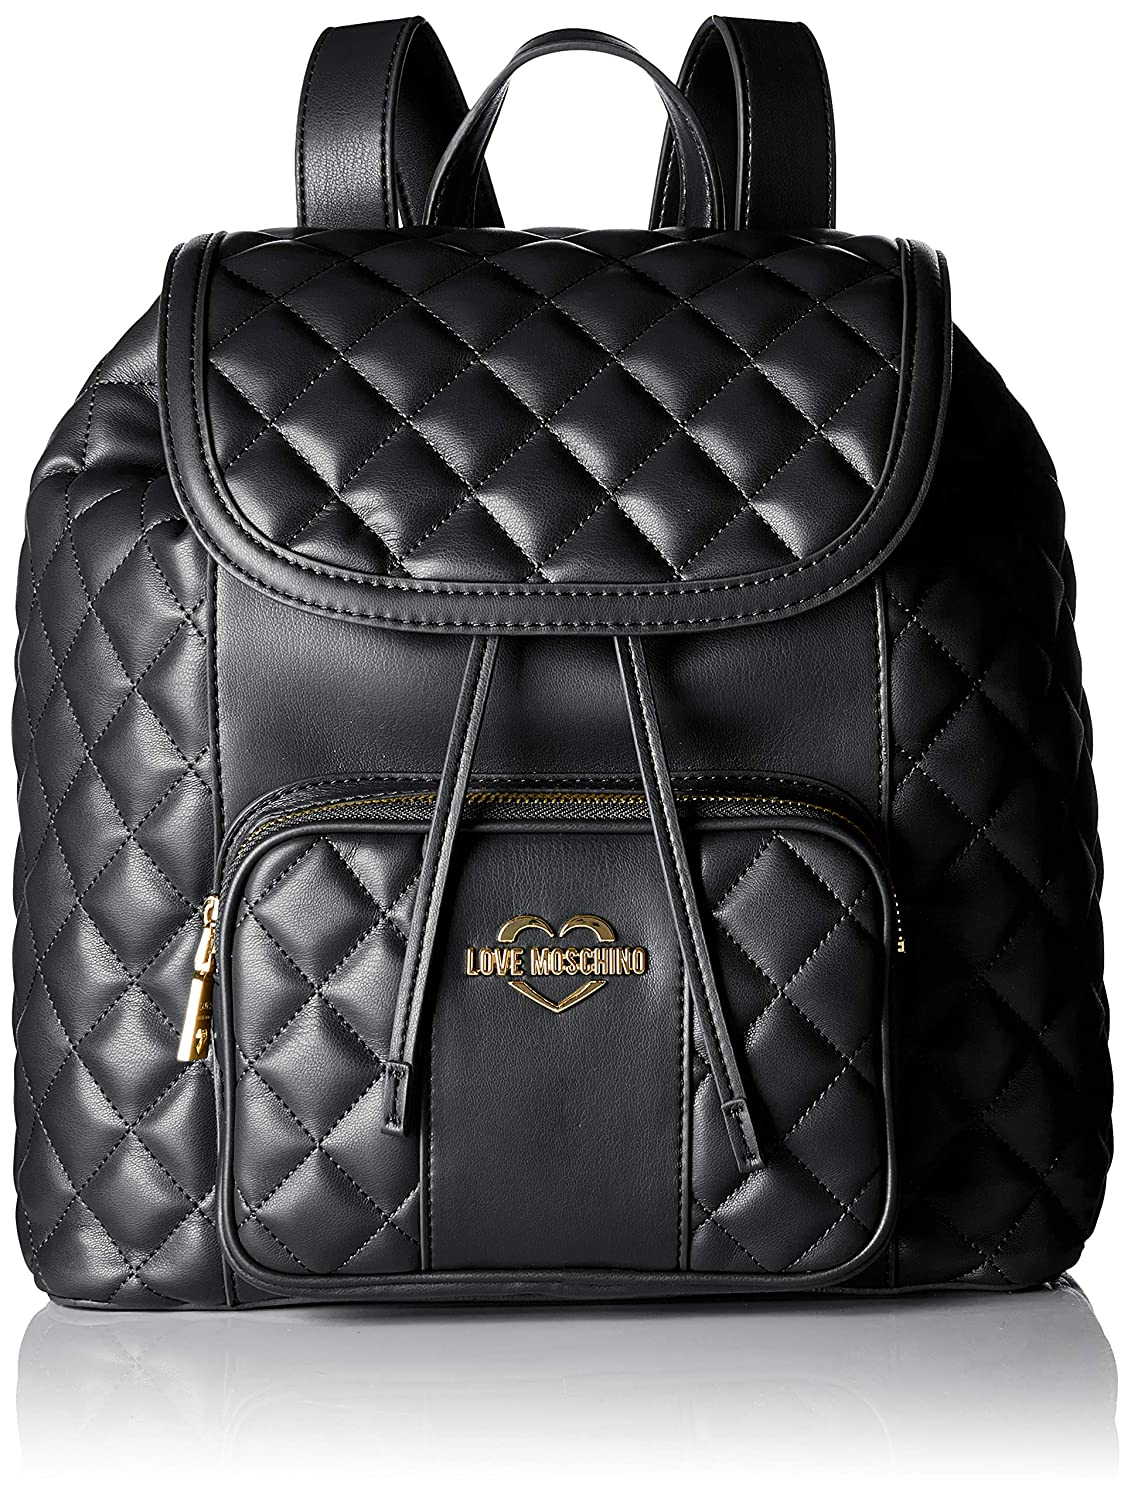 889d2243951 Amazon.com: Love Moschino Borsa Quilted Nappa Pu, Women's Backpack ...